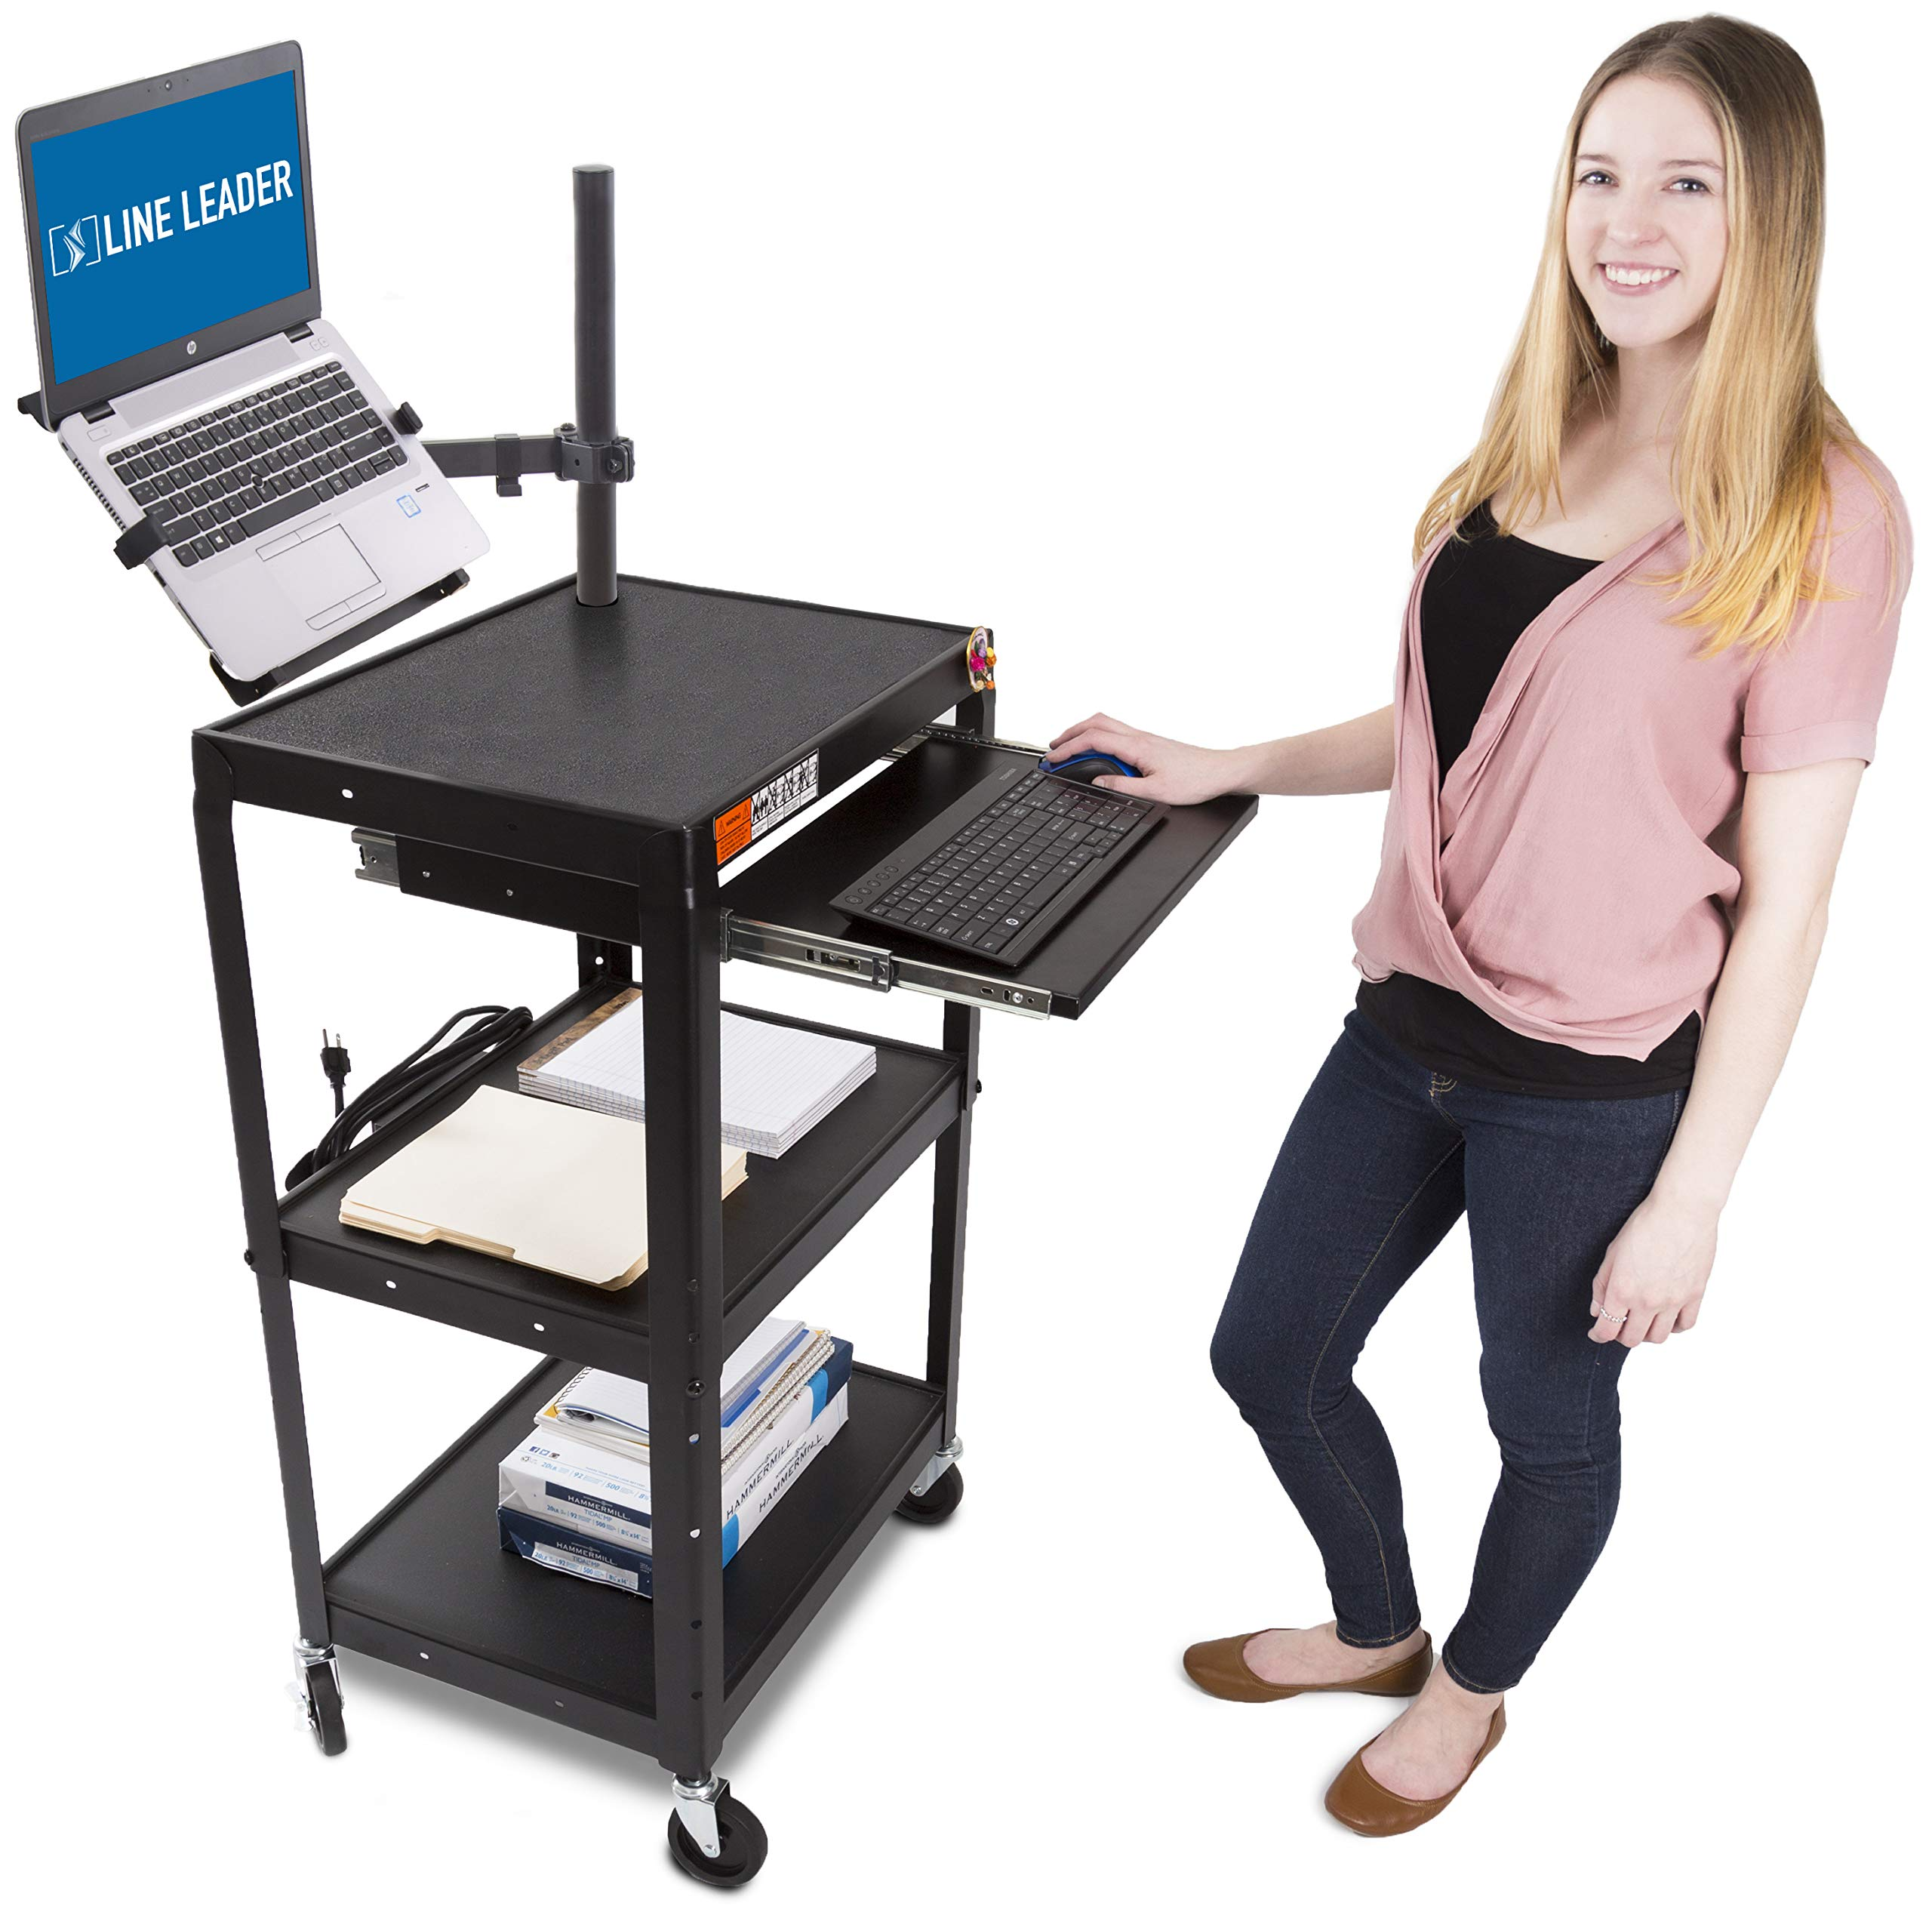 Line Leader AV Cart with Keyboard Tray and Laptop Stand - Mobile Workstation with Laptop Mount - Take Your Office On-The-Go with Our Stand Up Computer Cart (Black / 24 x 18)